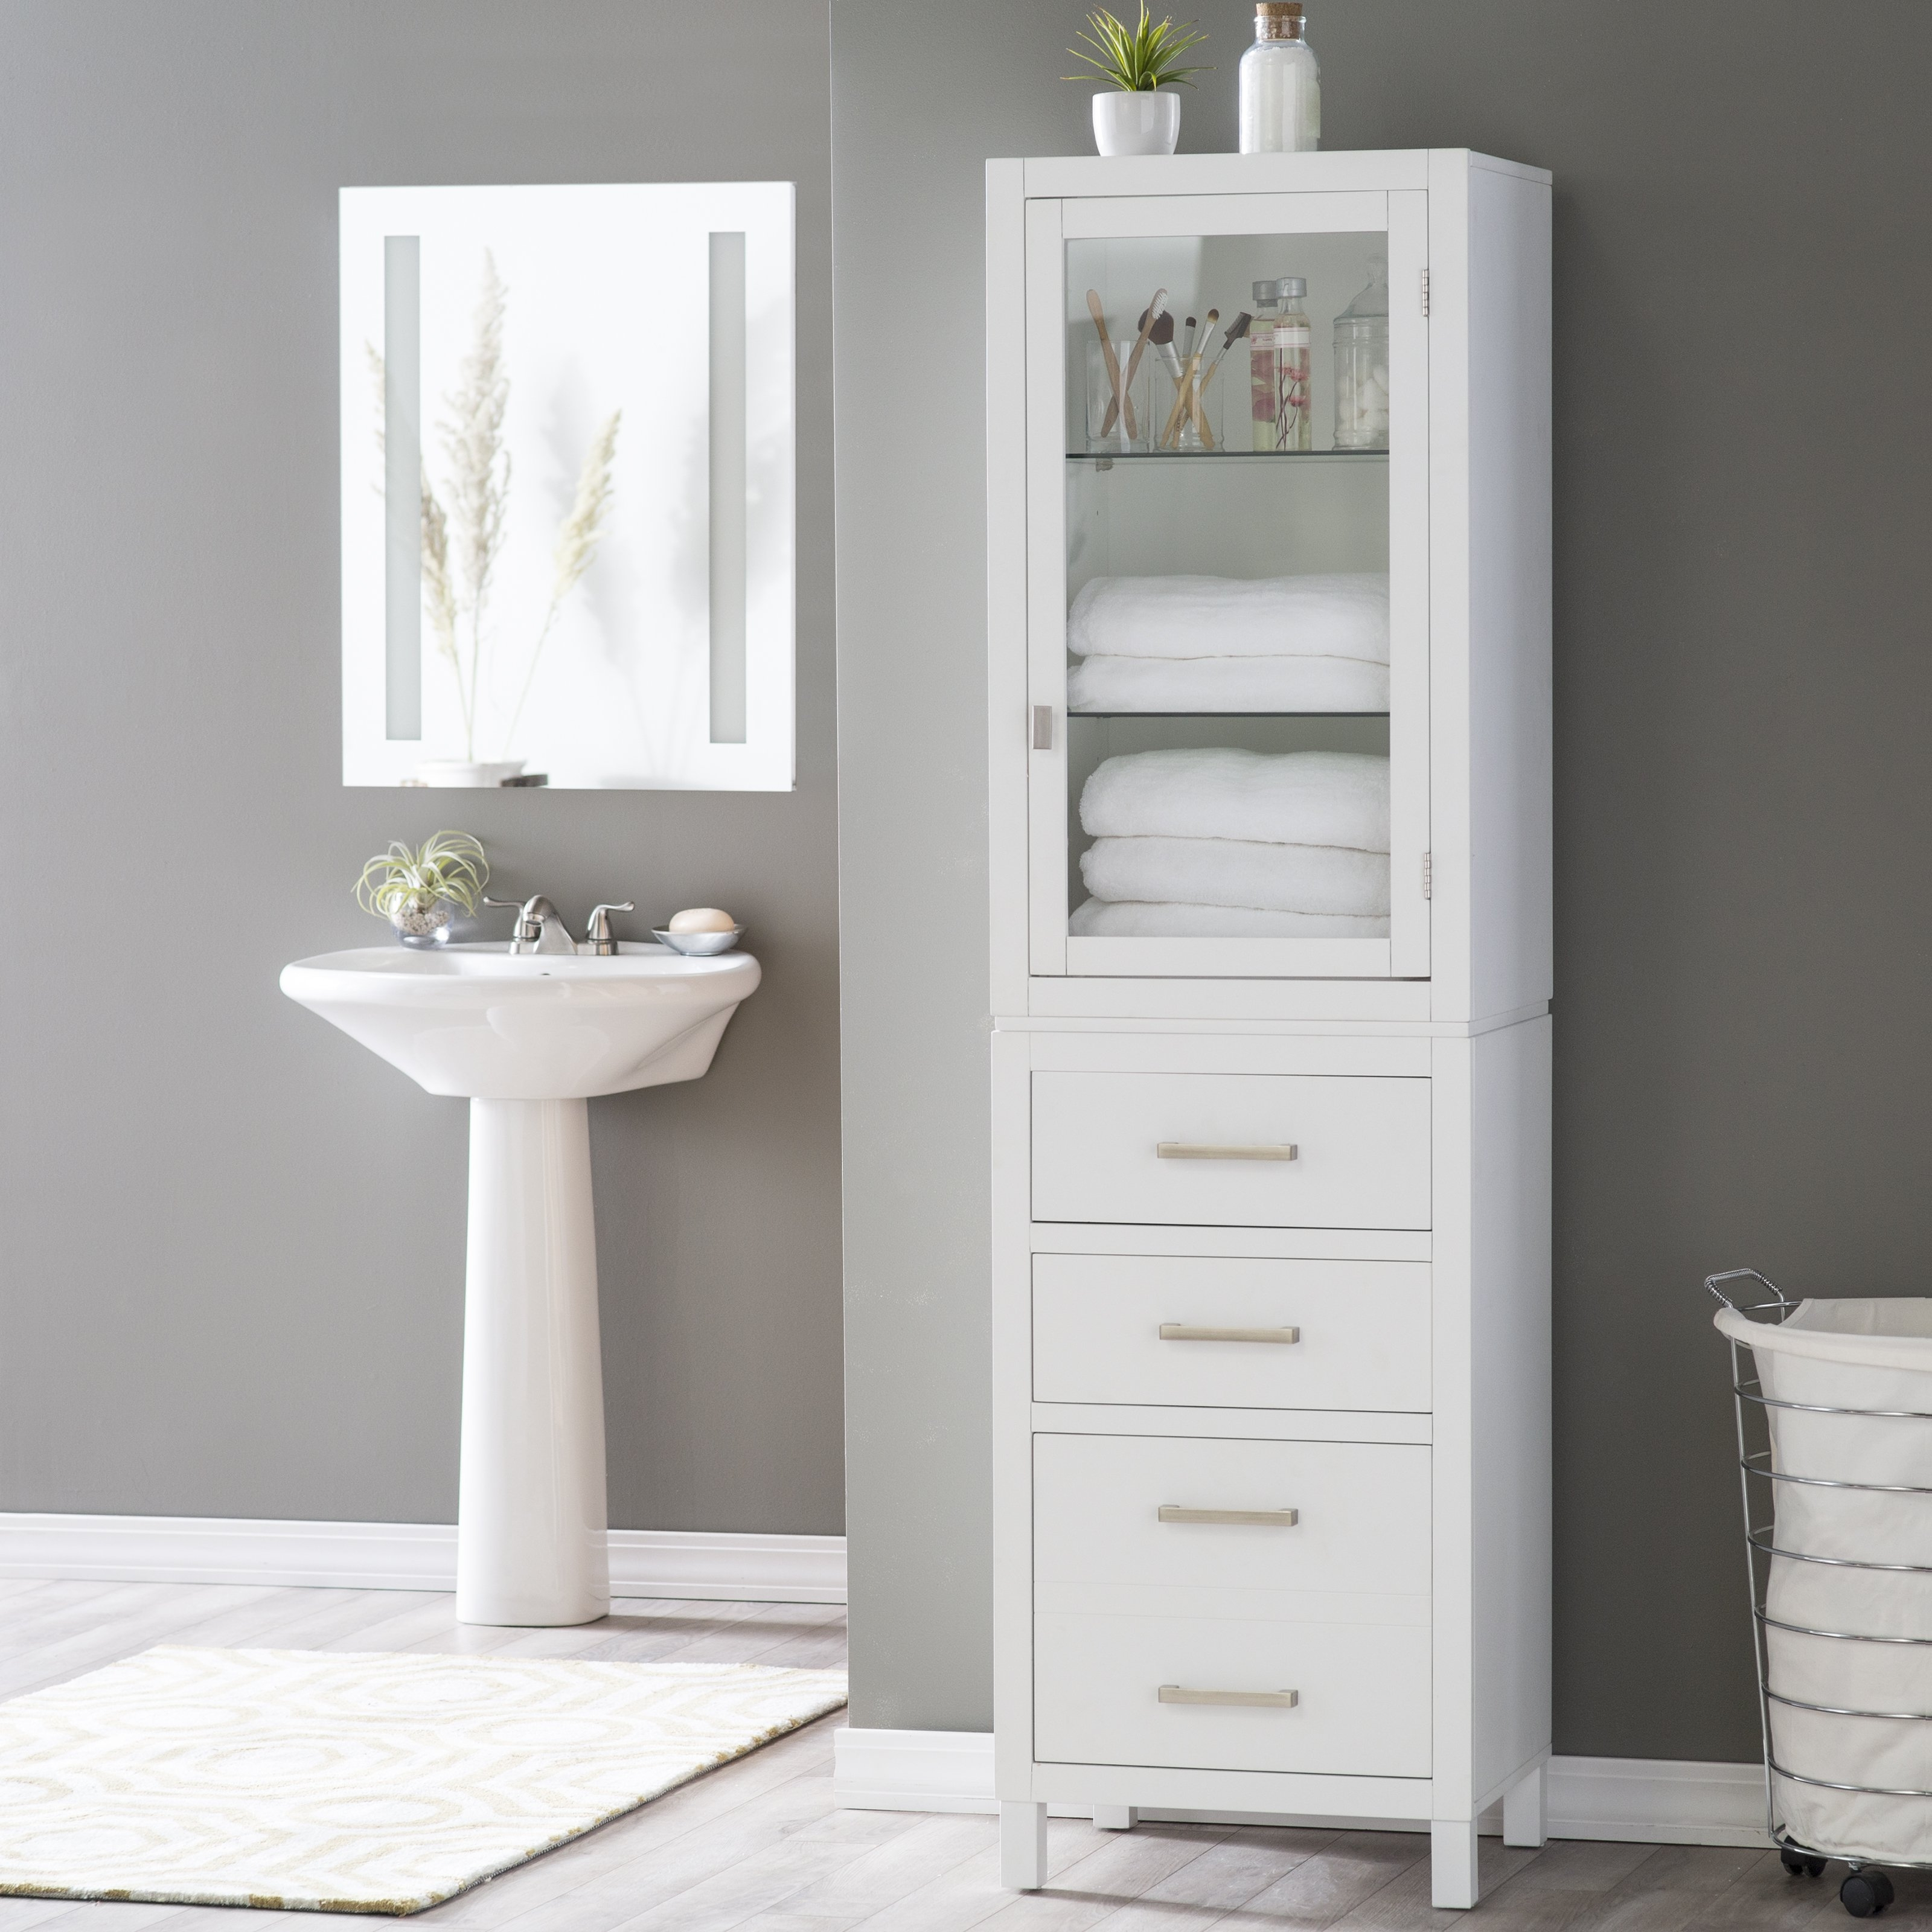 Floor Standing Bathroom Cabinet Ikea